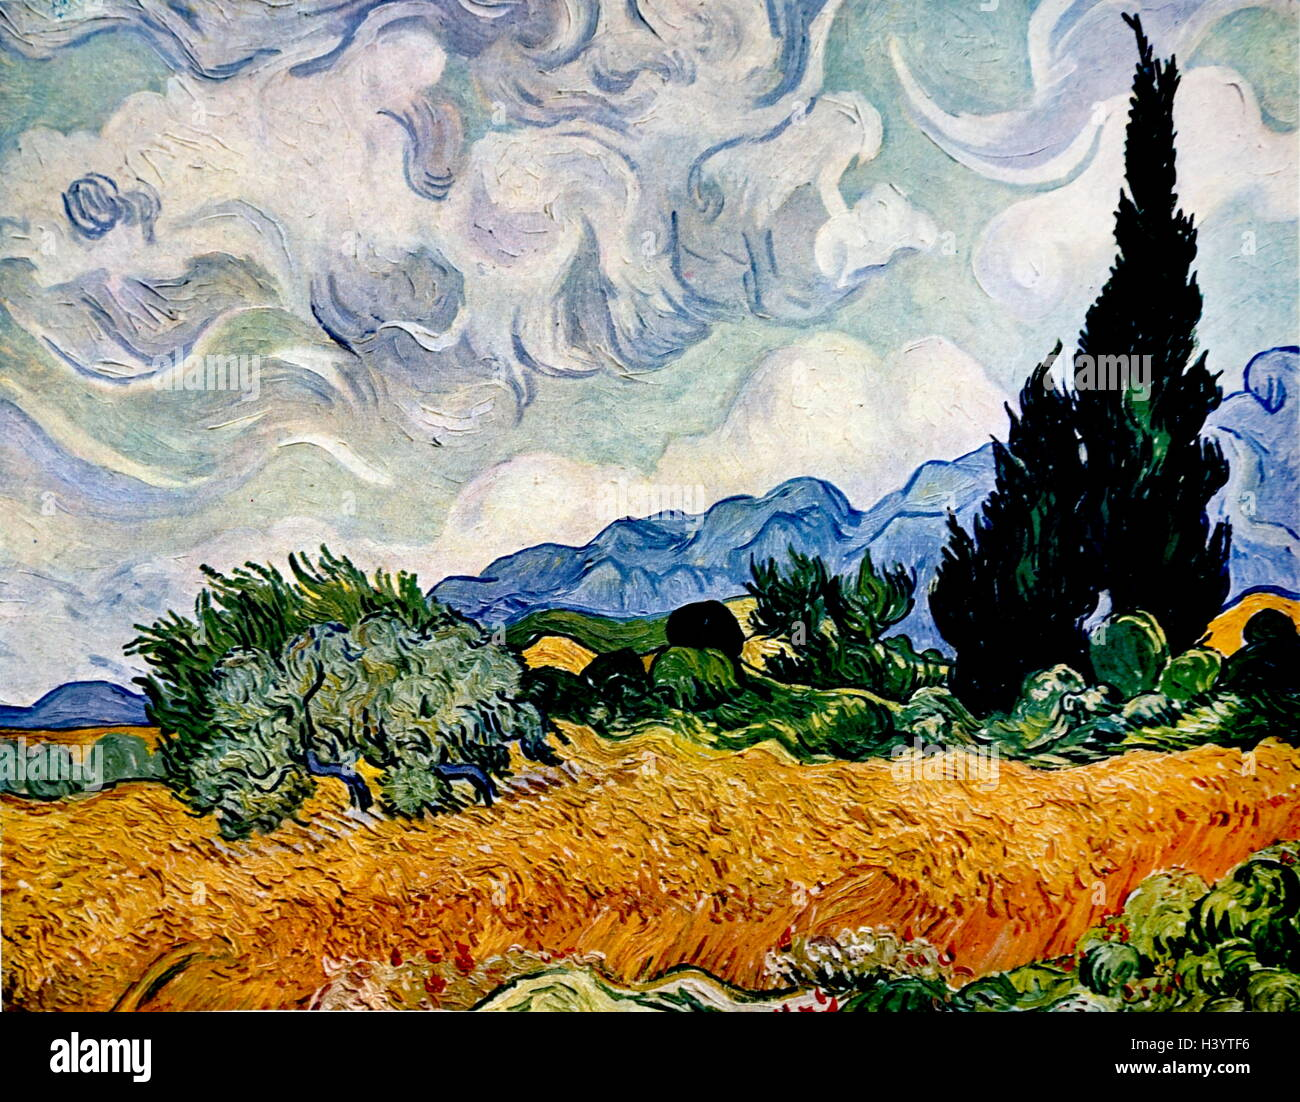 Painting titled 'Wheat Field with Cypresses' by Vincent van Gogh (1853-1890) a Dutch painter and draftsman. - Stock Image